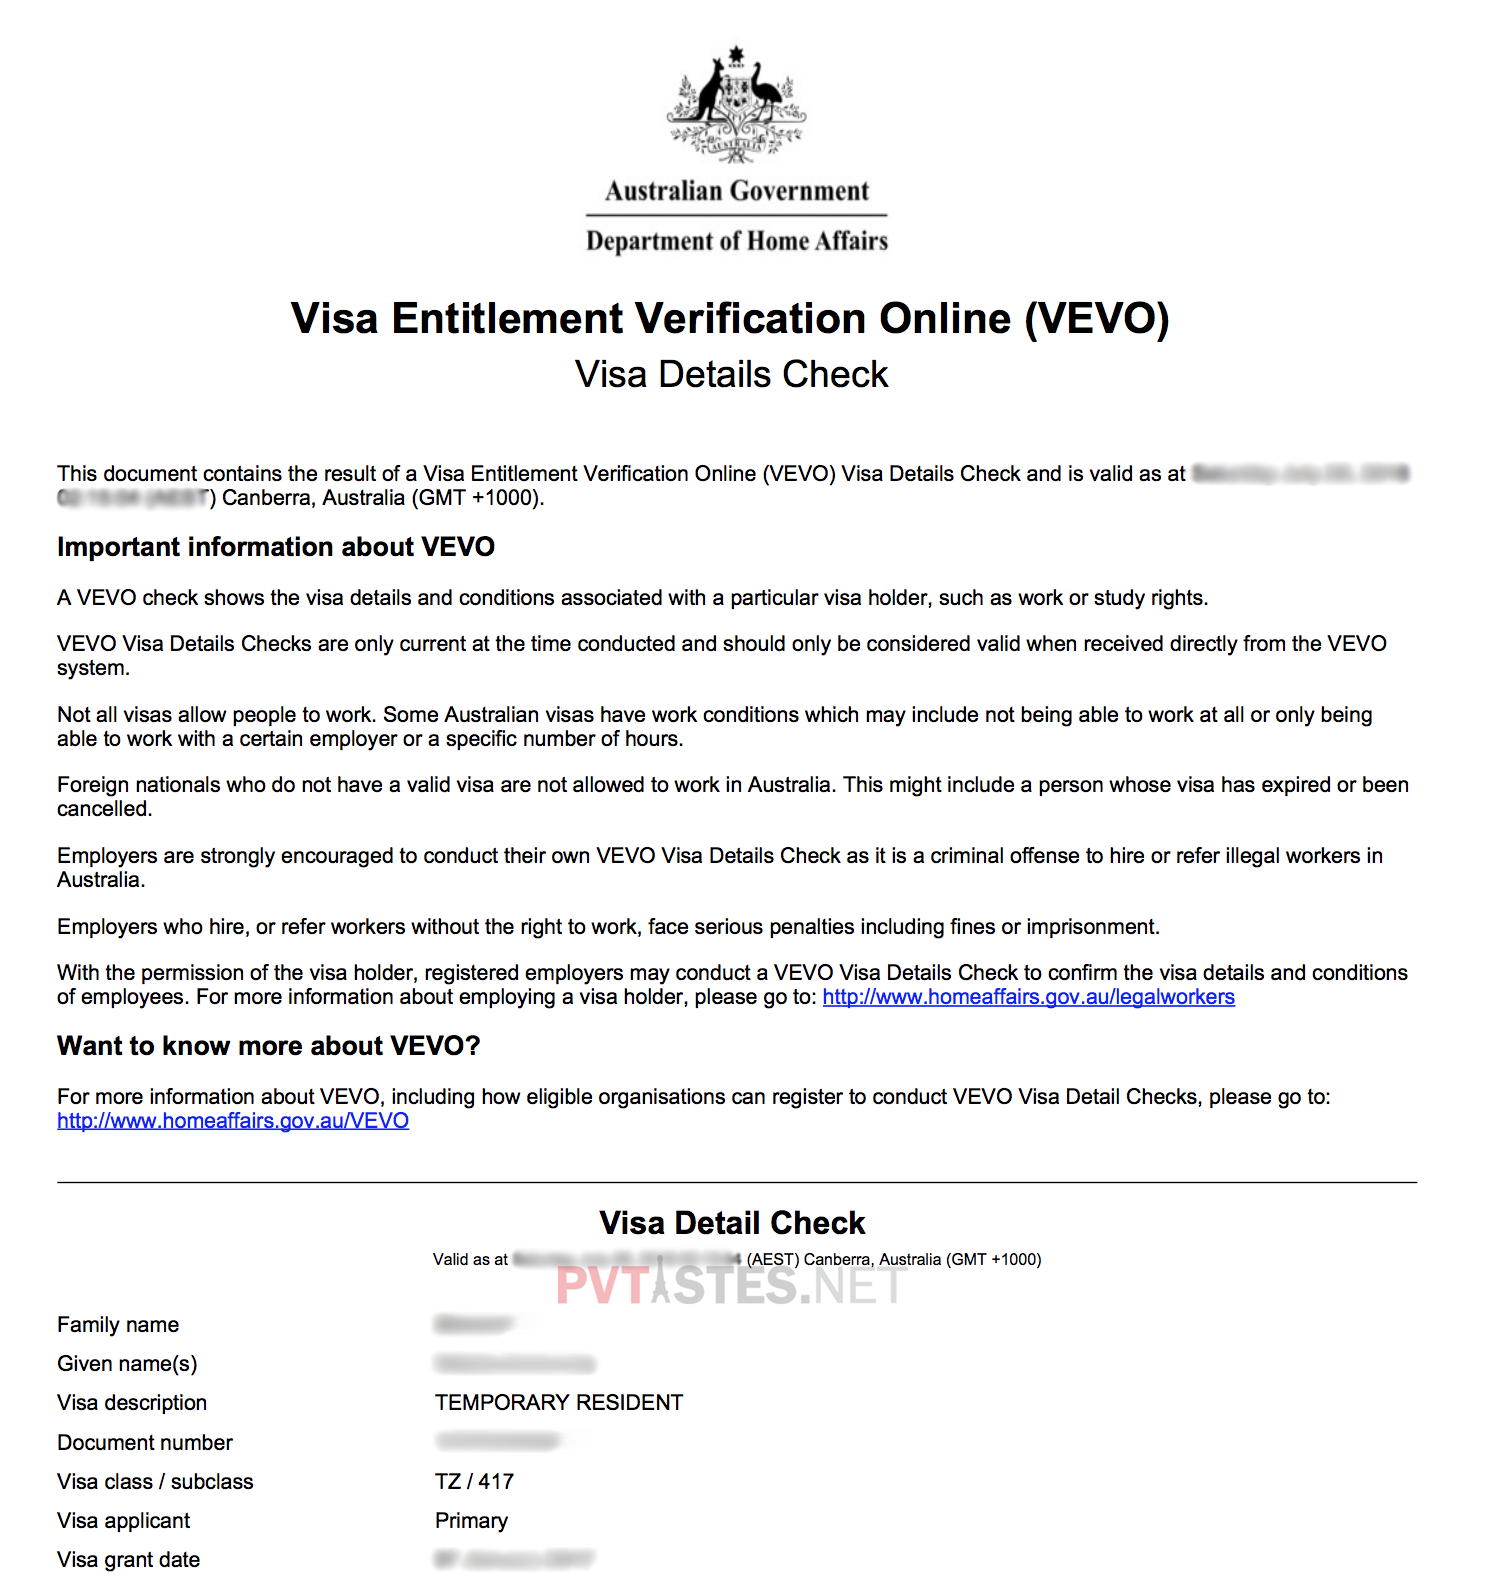 Applying For A Working Holiday Visa Subclass 417 To Australia